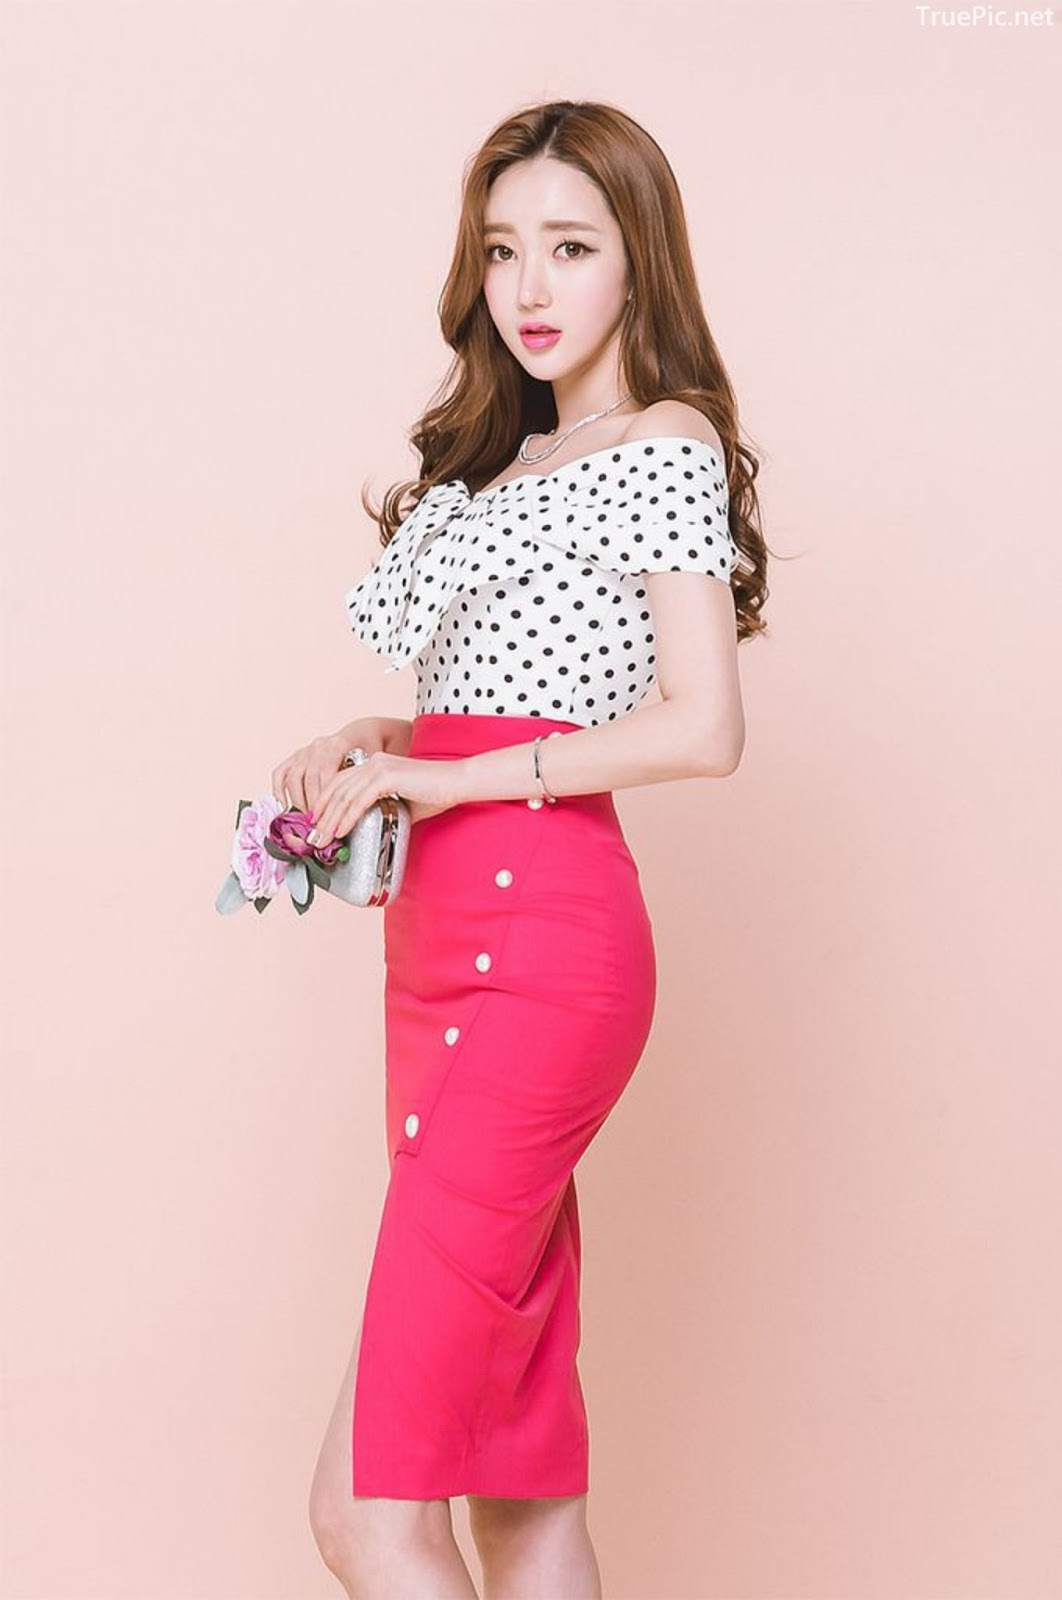 Lee Yeon Jeong - Indoor Photoshoot Collection - Korean fashion model - Part 4 - Picture 5